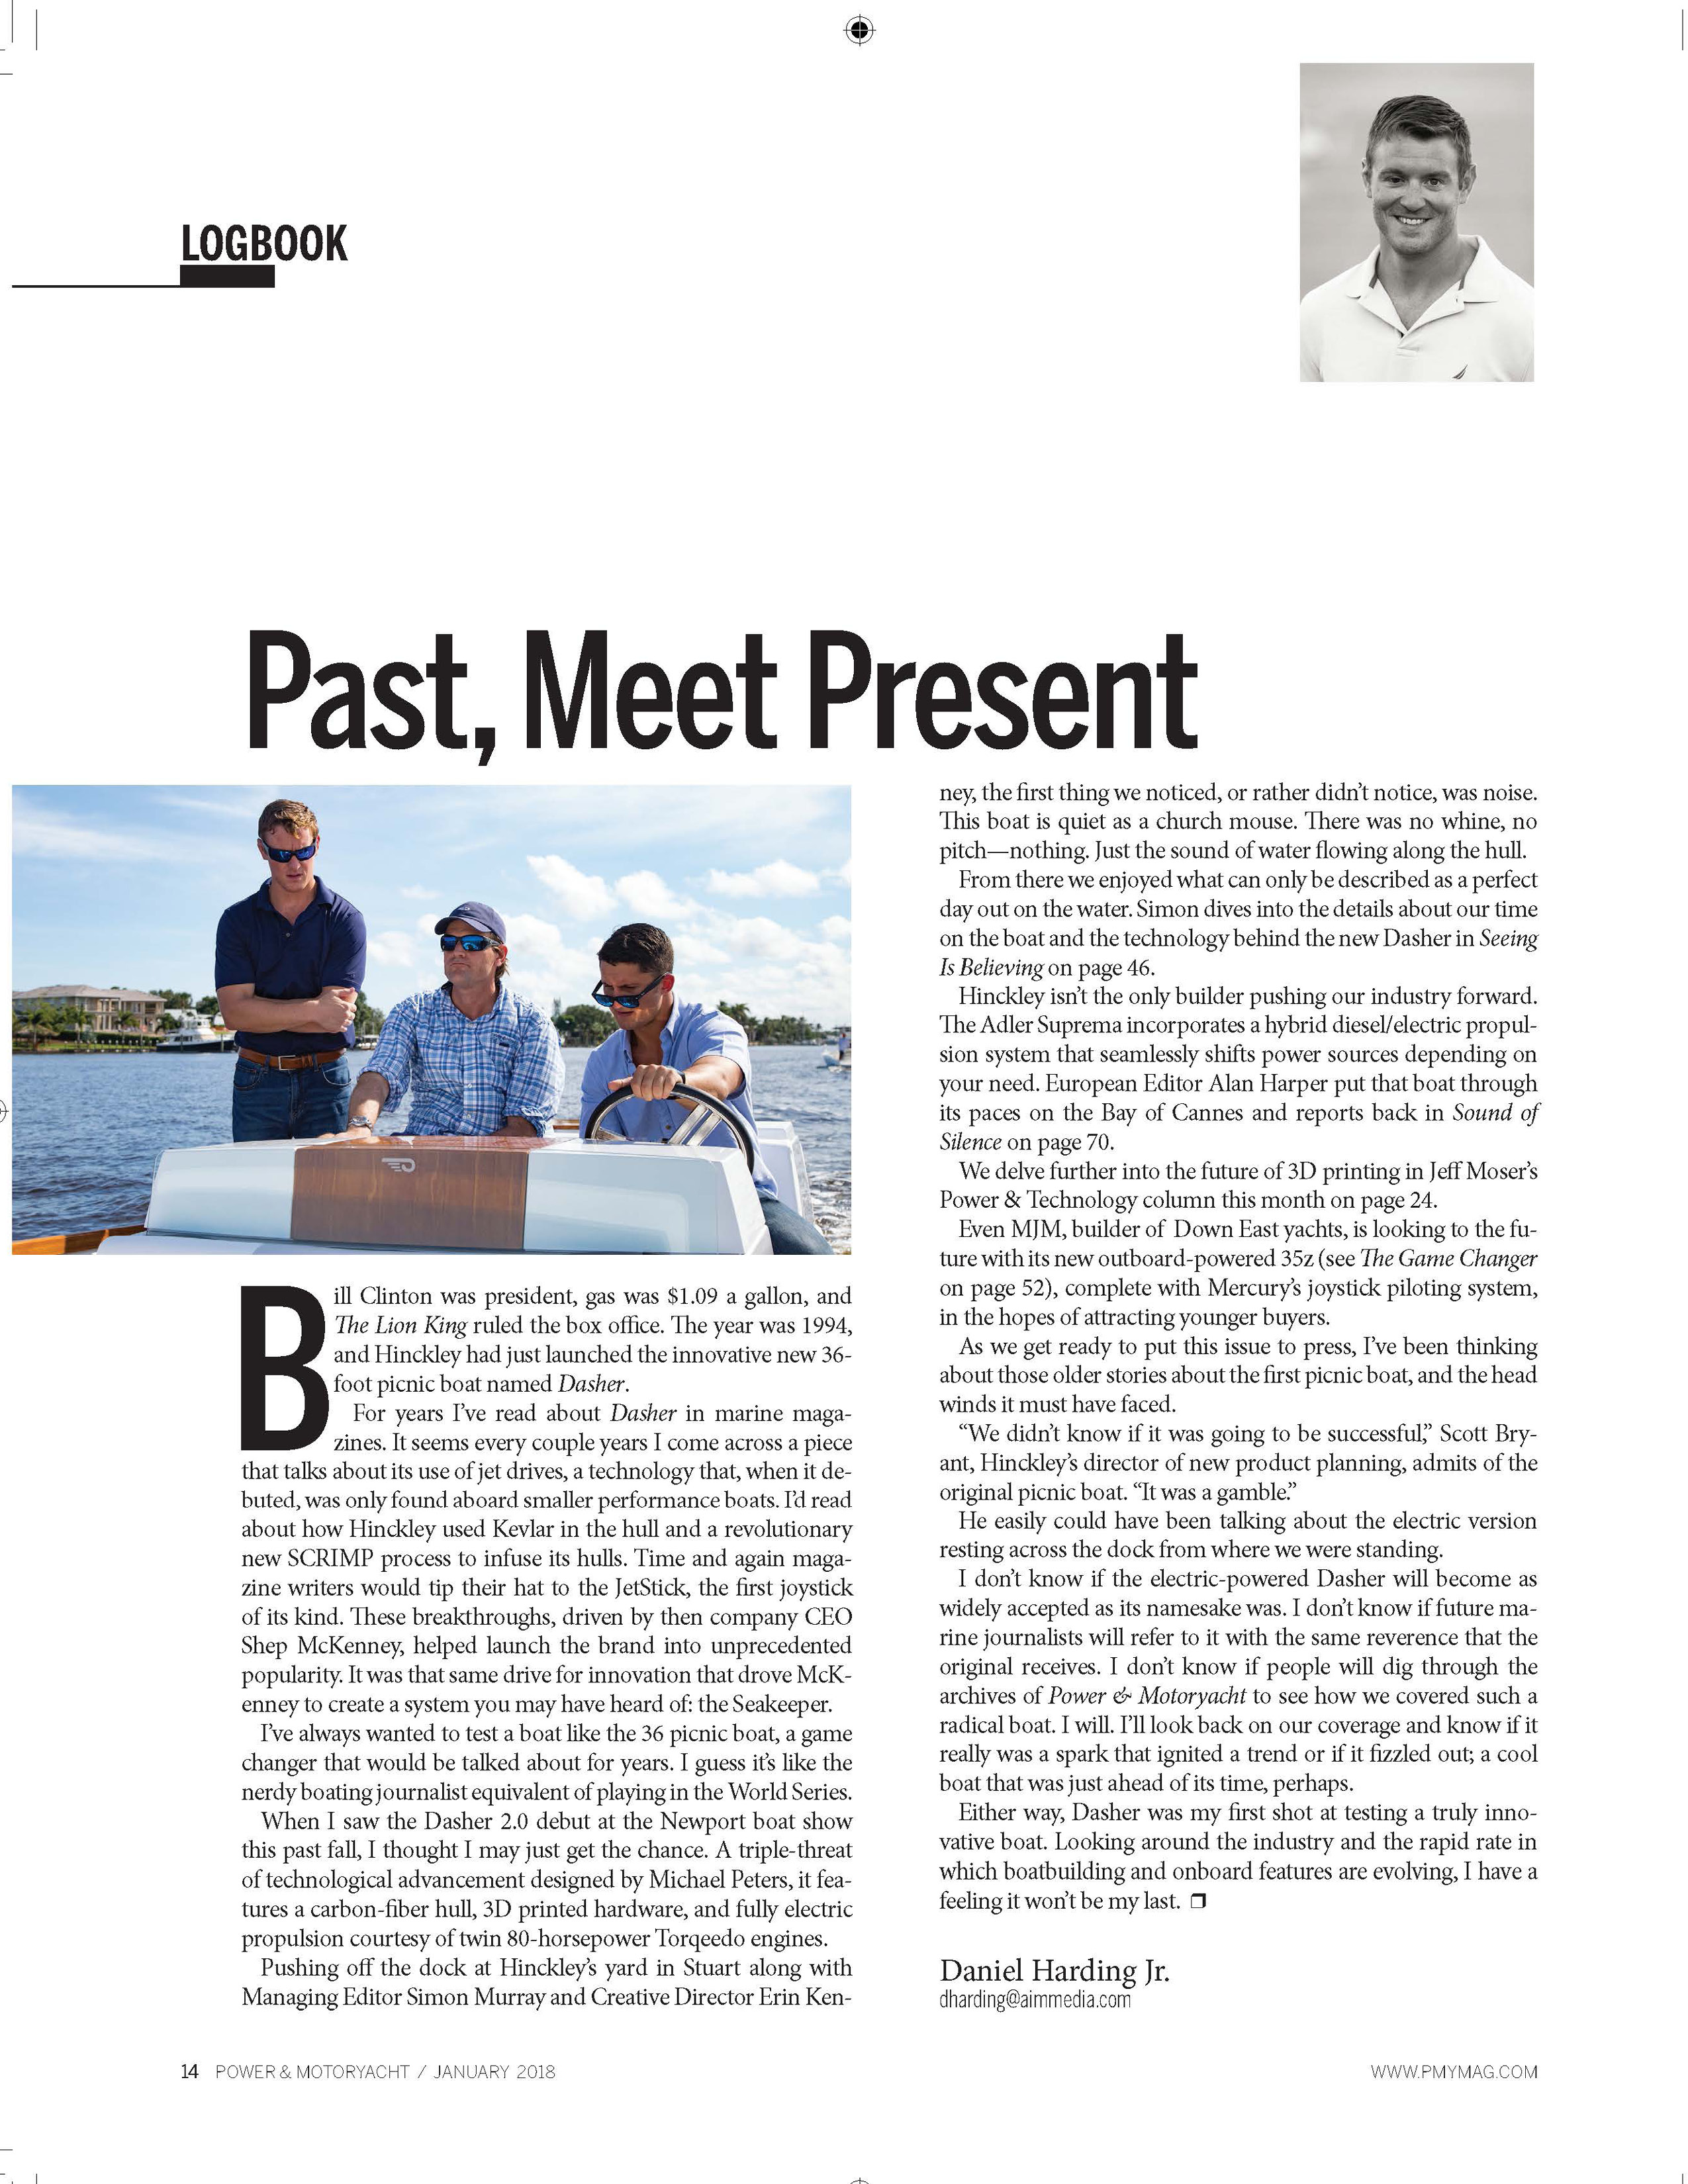 Hinckley in Power & Motoryacht Editor's Note